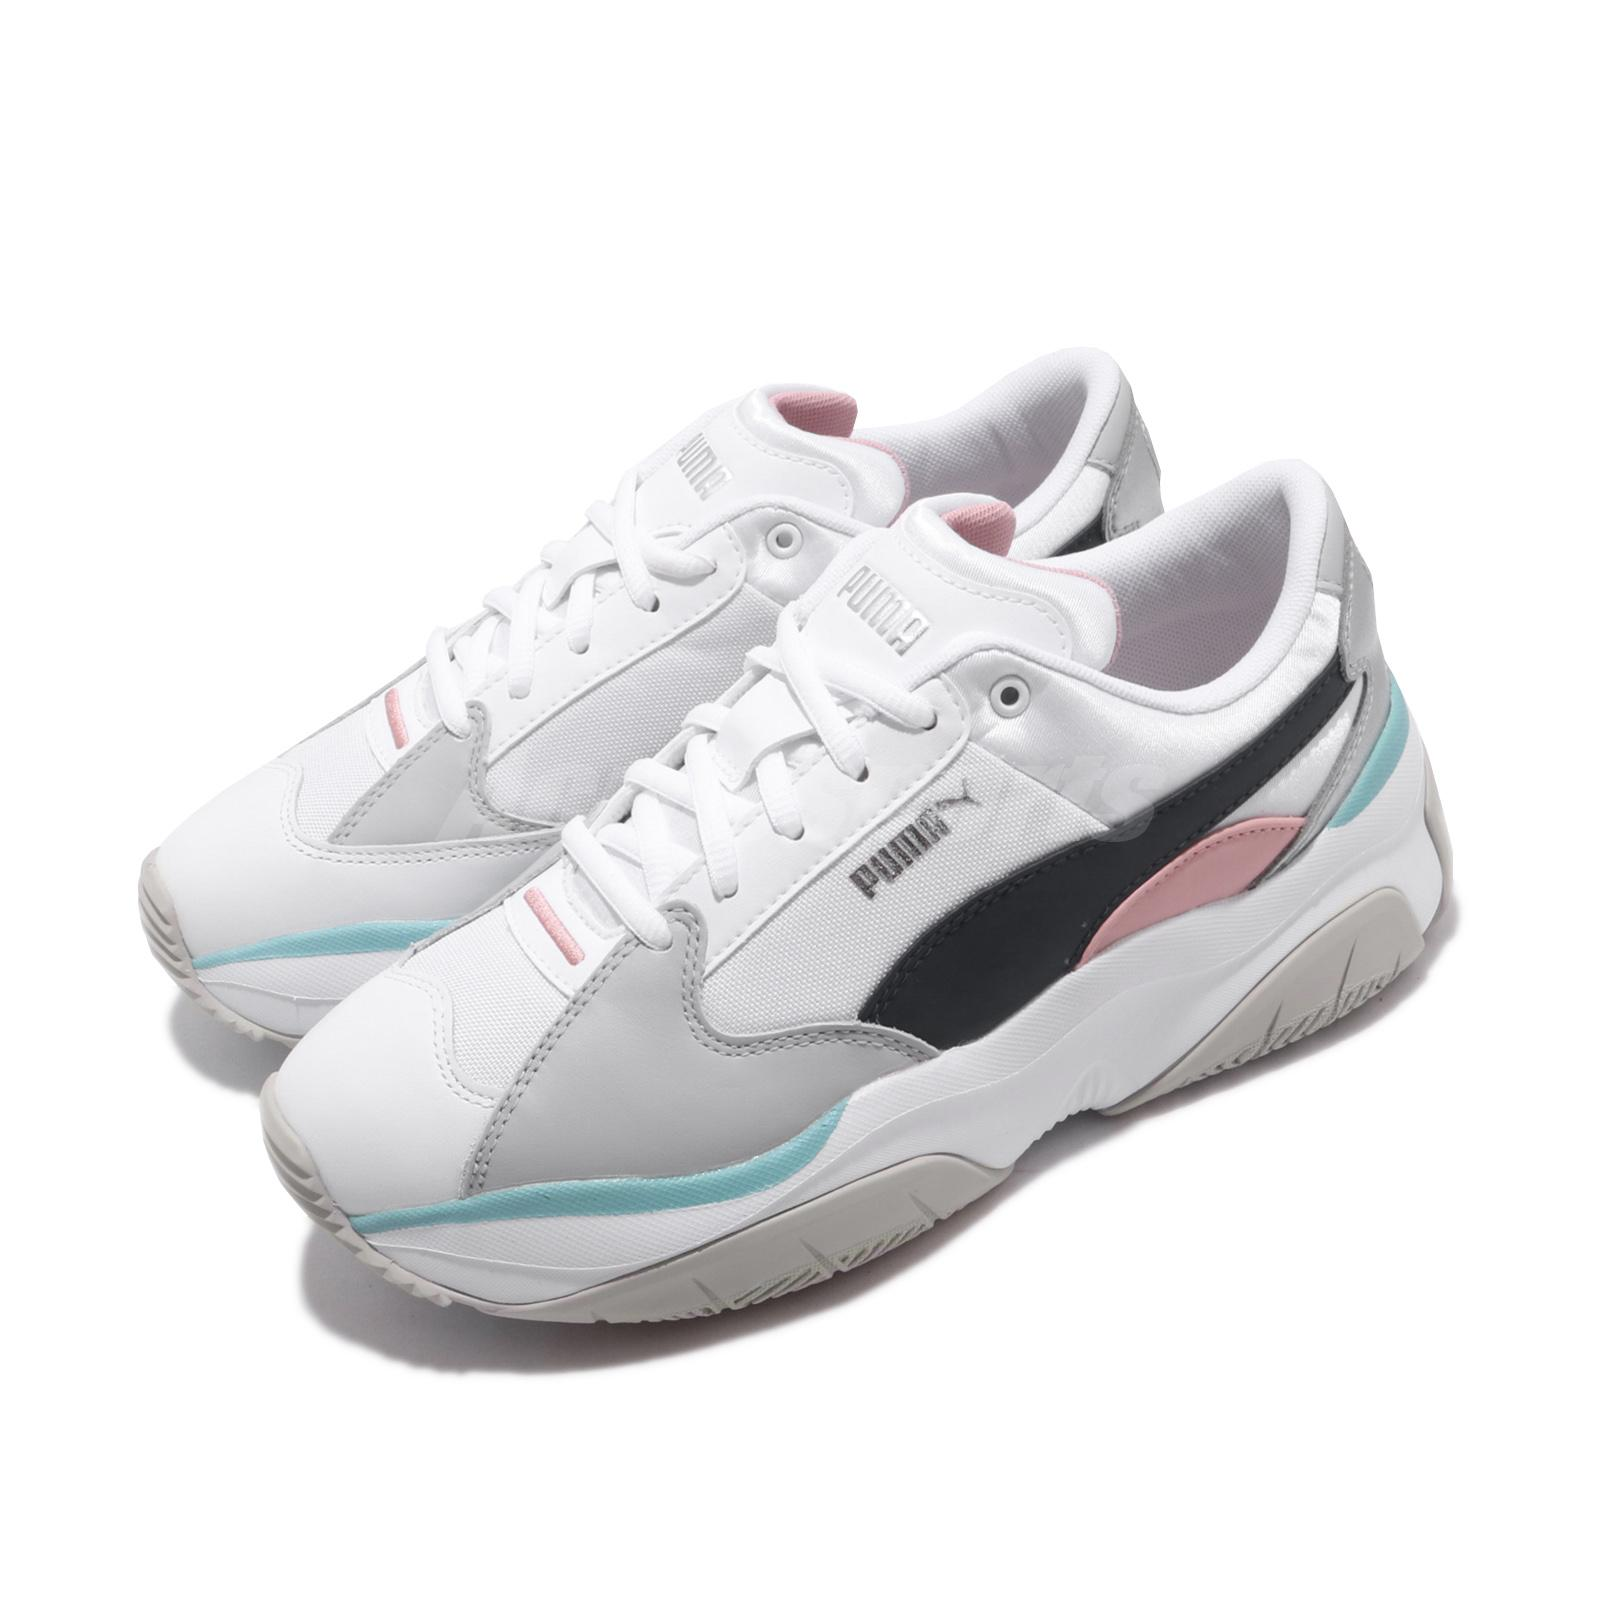 Detalles acerca de Puma Storm. Y Metallic Wns Peacoat White Pink Grey Women Daddy Shoes 371412 02